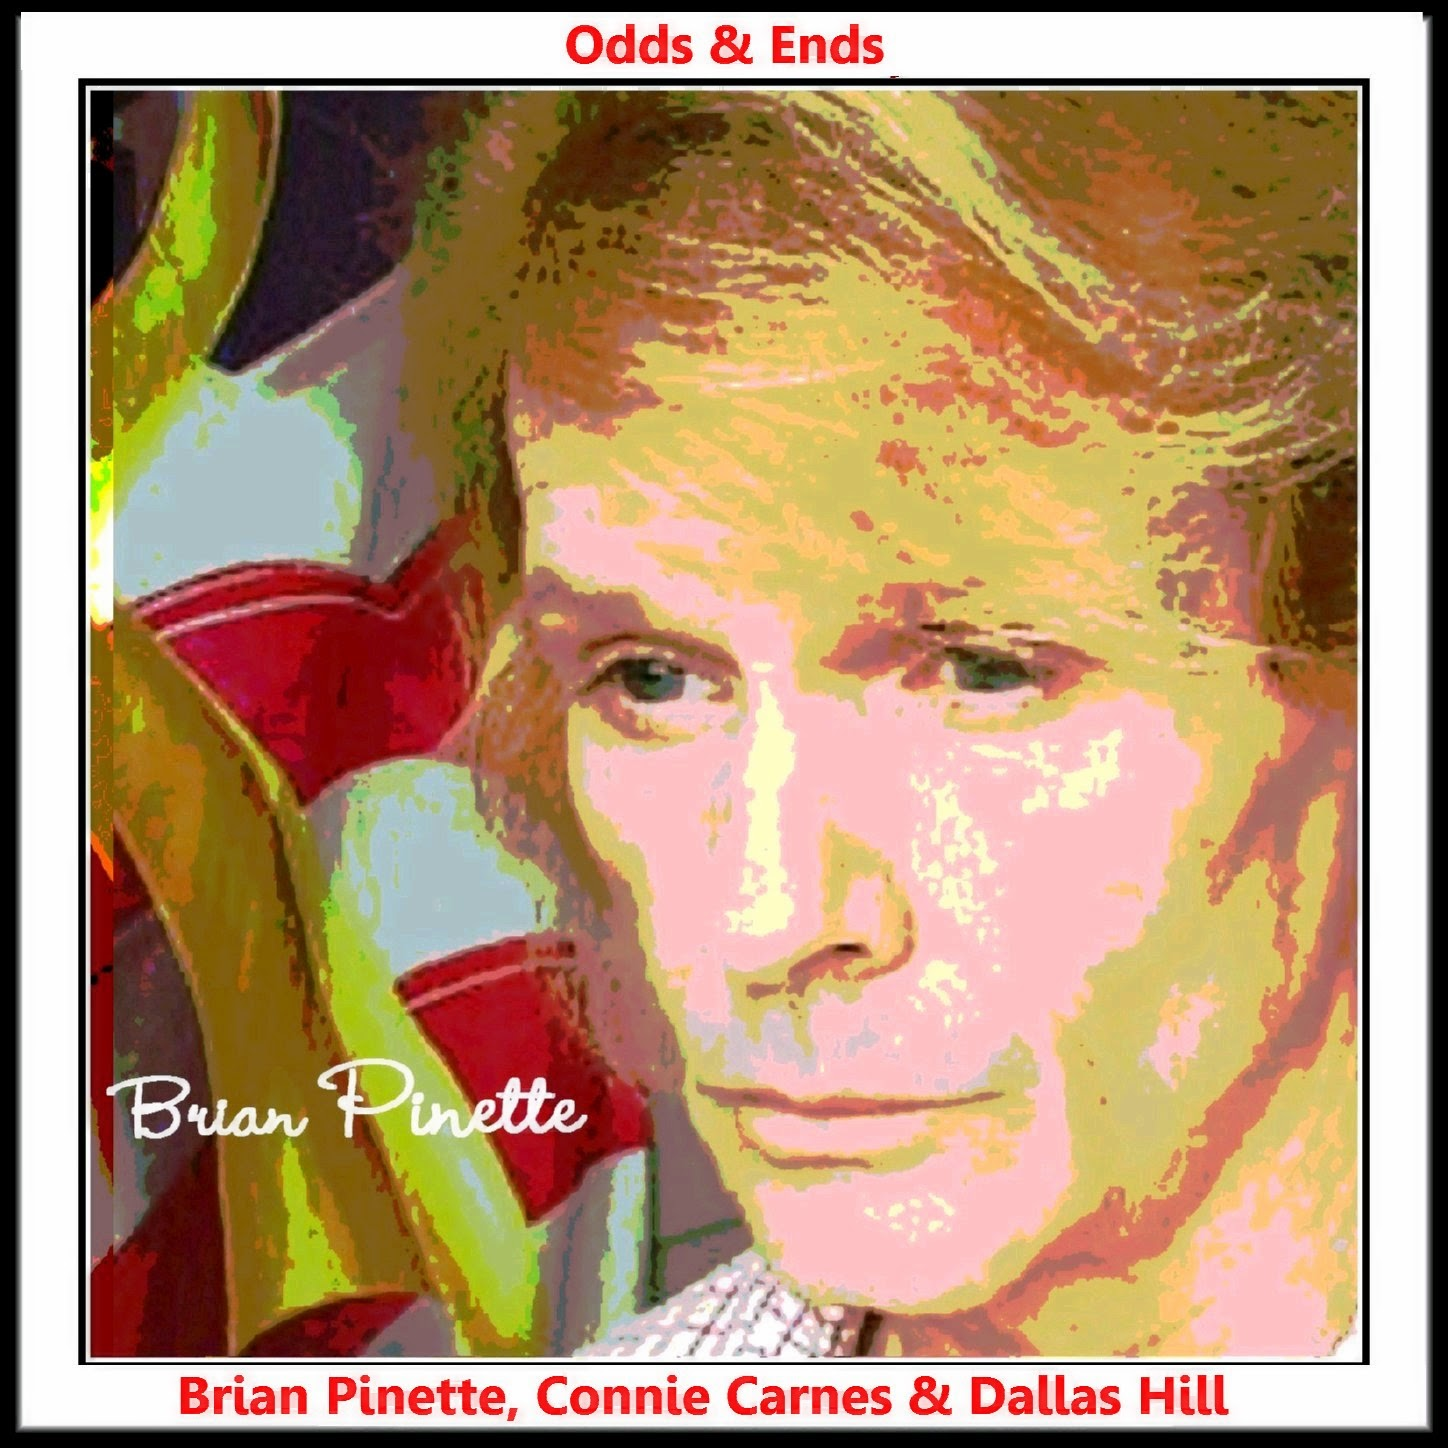 Brian Pinette - Odds & Ends - Connie Carnes & Dallas Hill mp3 album $5.99